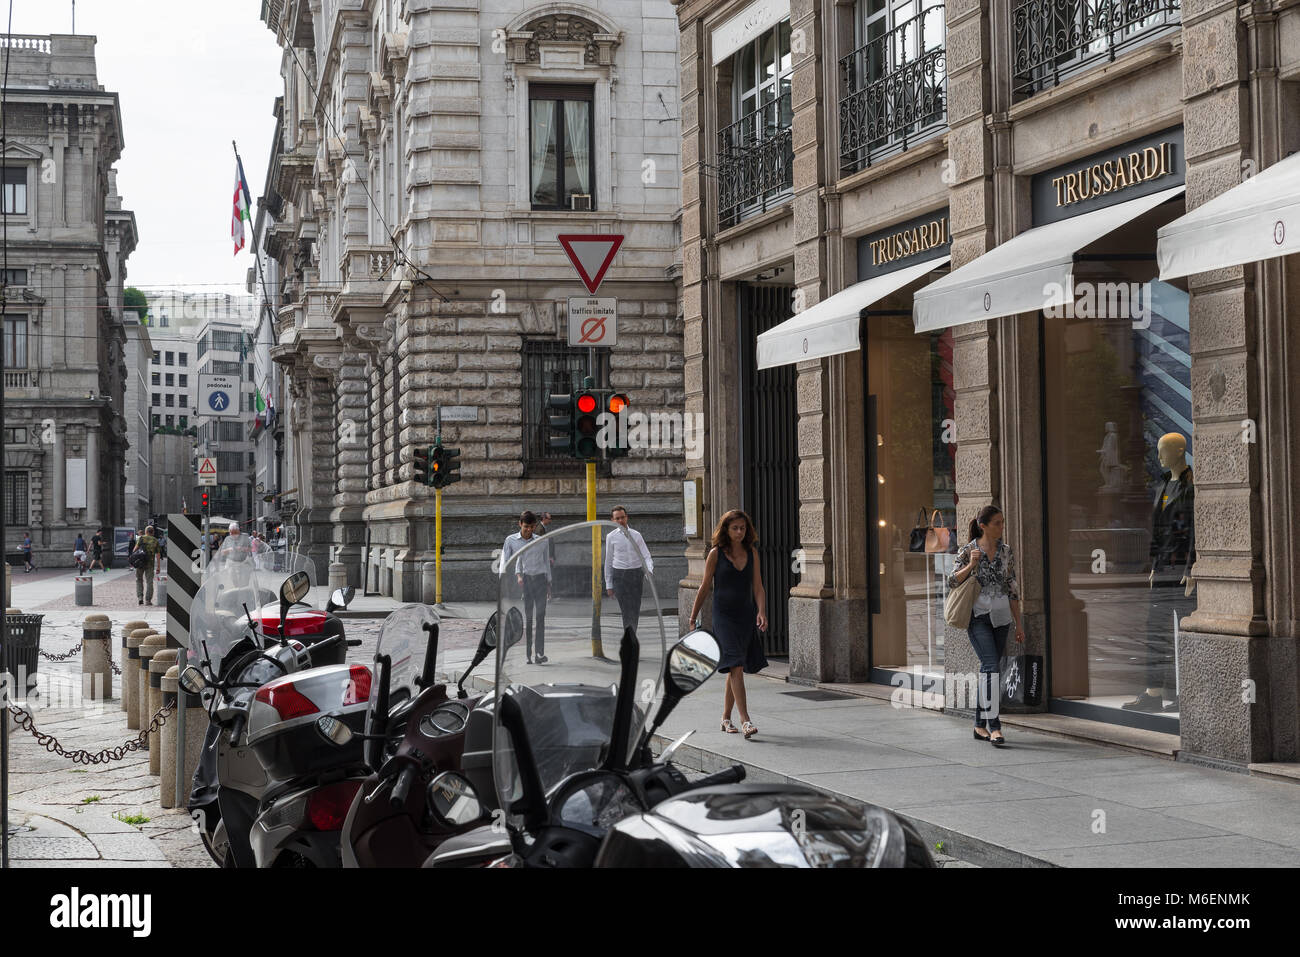 Milan, Italy - August 10, 2017: Trussardi shop in the city center of Milan. Symbol and concept of luxury, shopping, Stock Photo